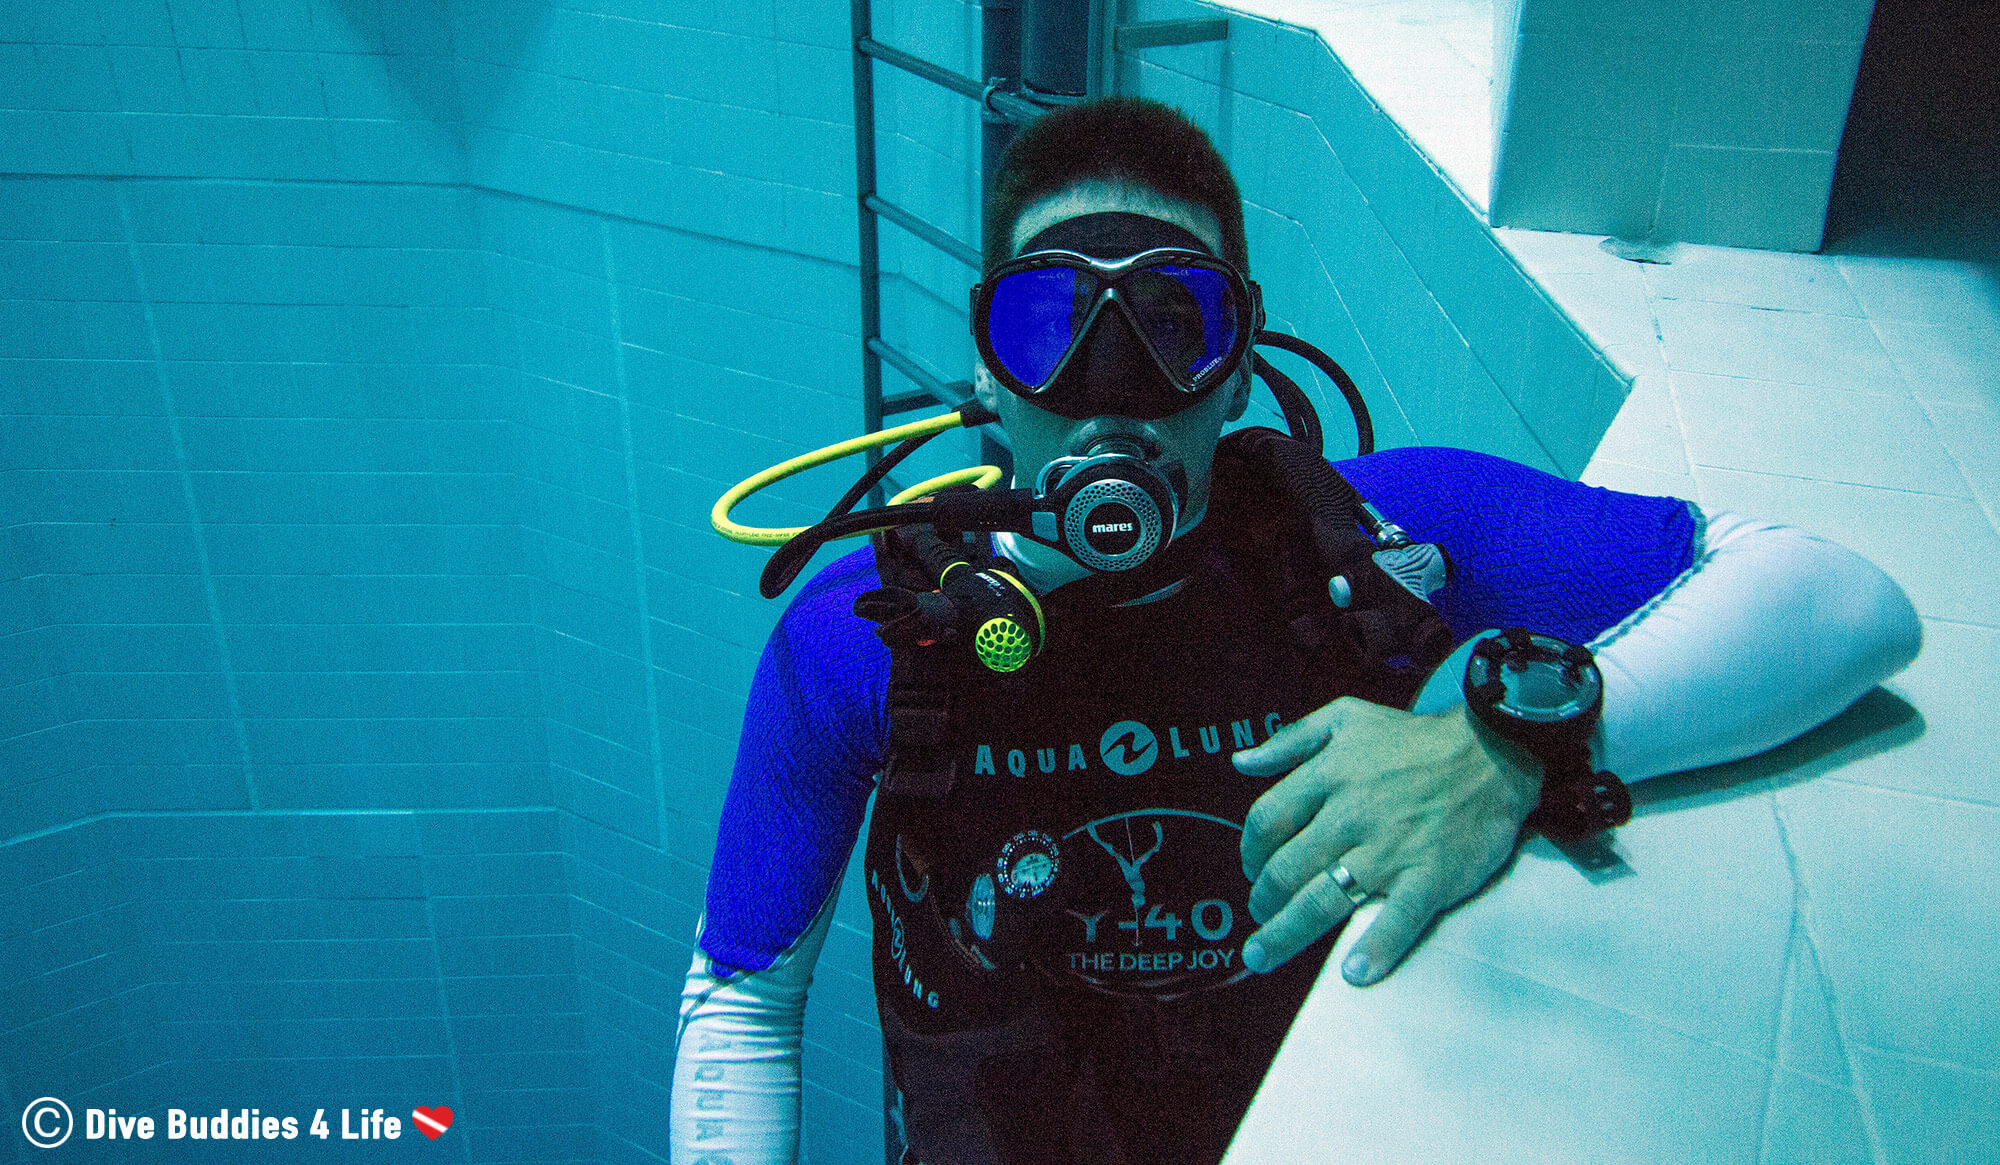 Scuba Diving Joey Hanging Out On The Ledge Of The Nemo 33 Second Deepest Pool In The World, Belgium, Europe